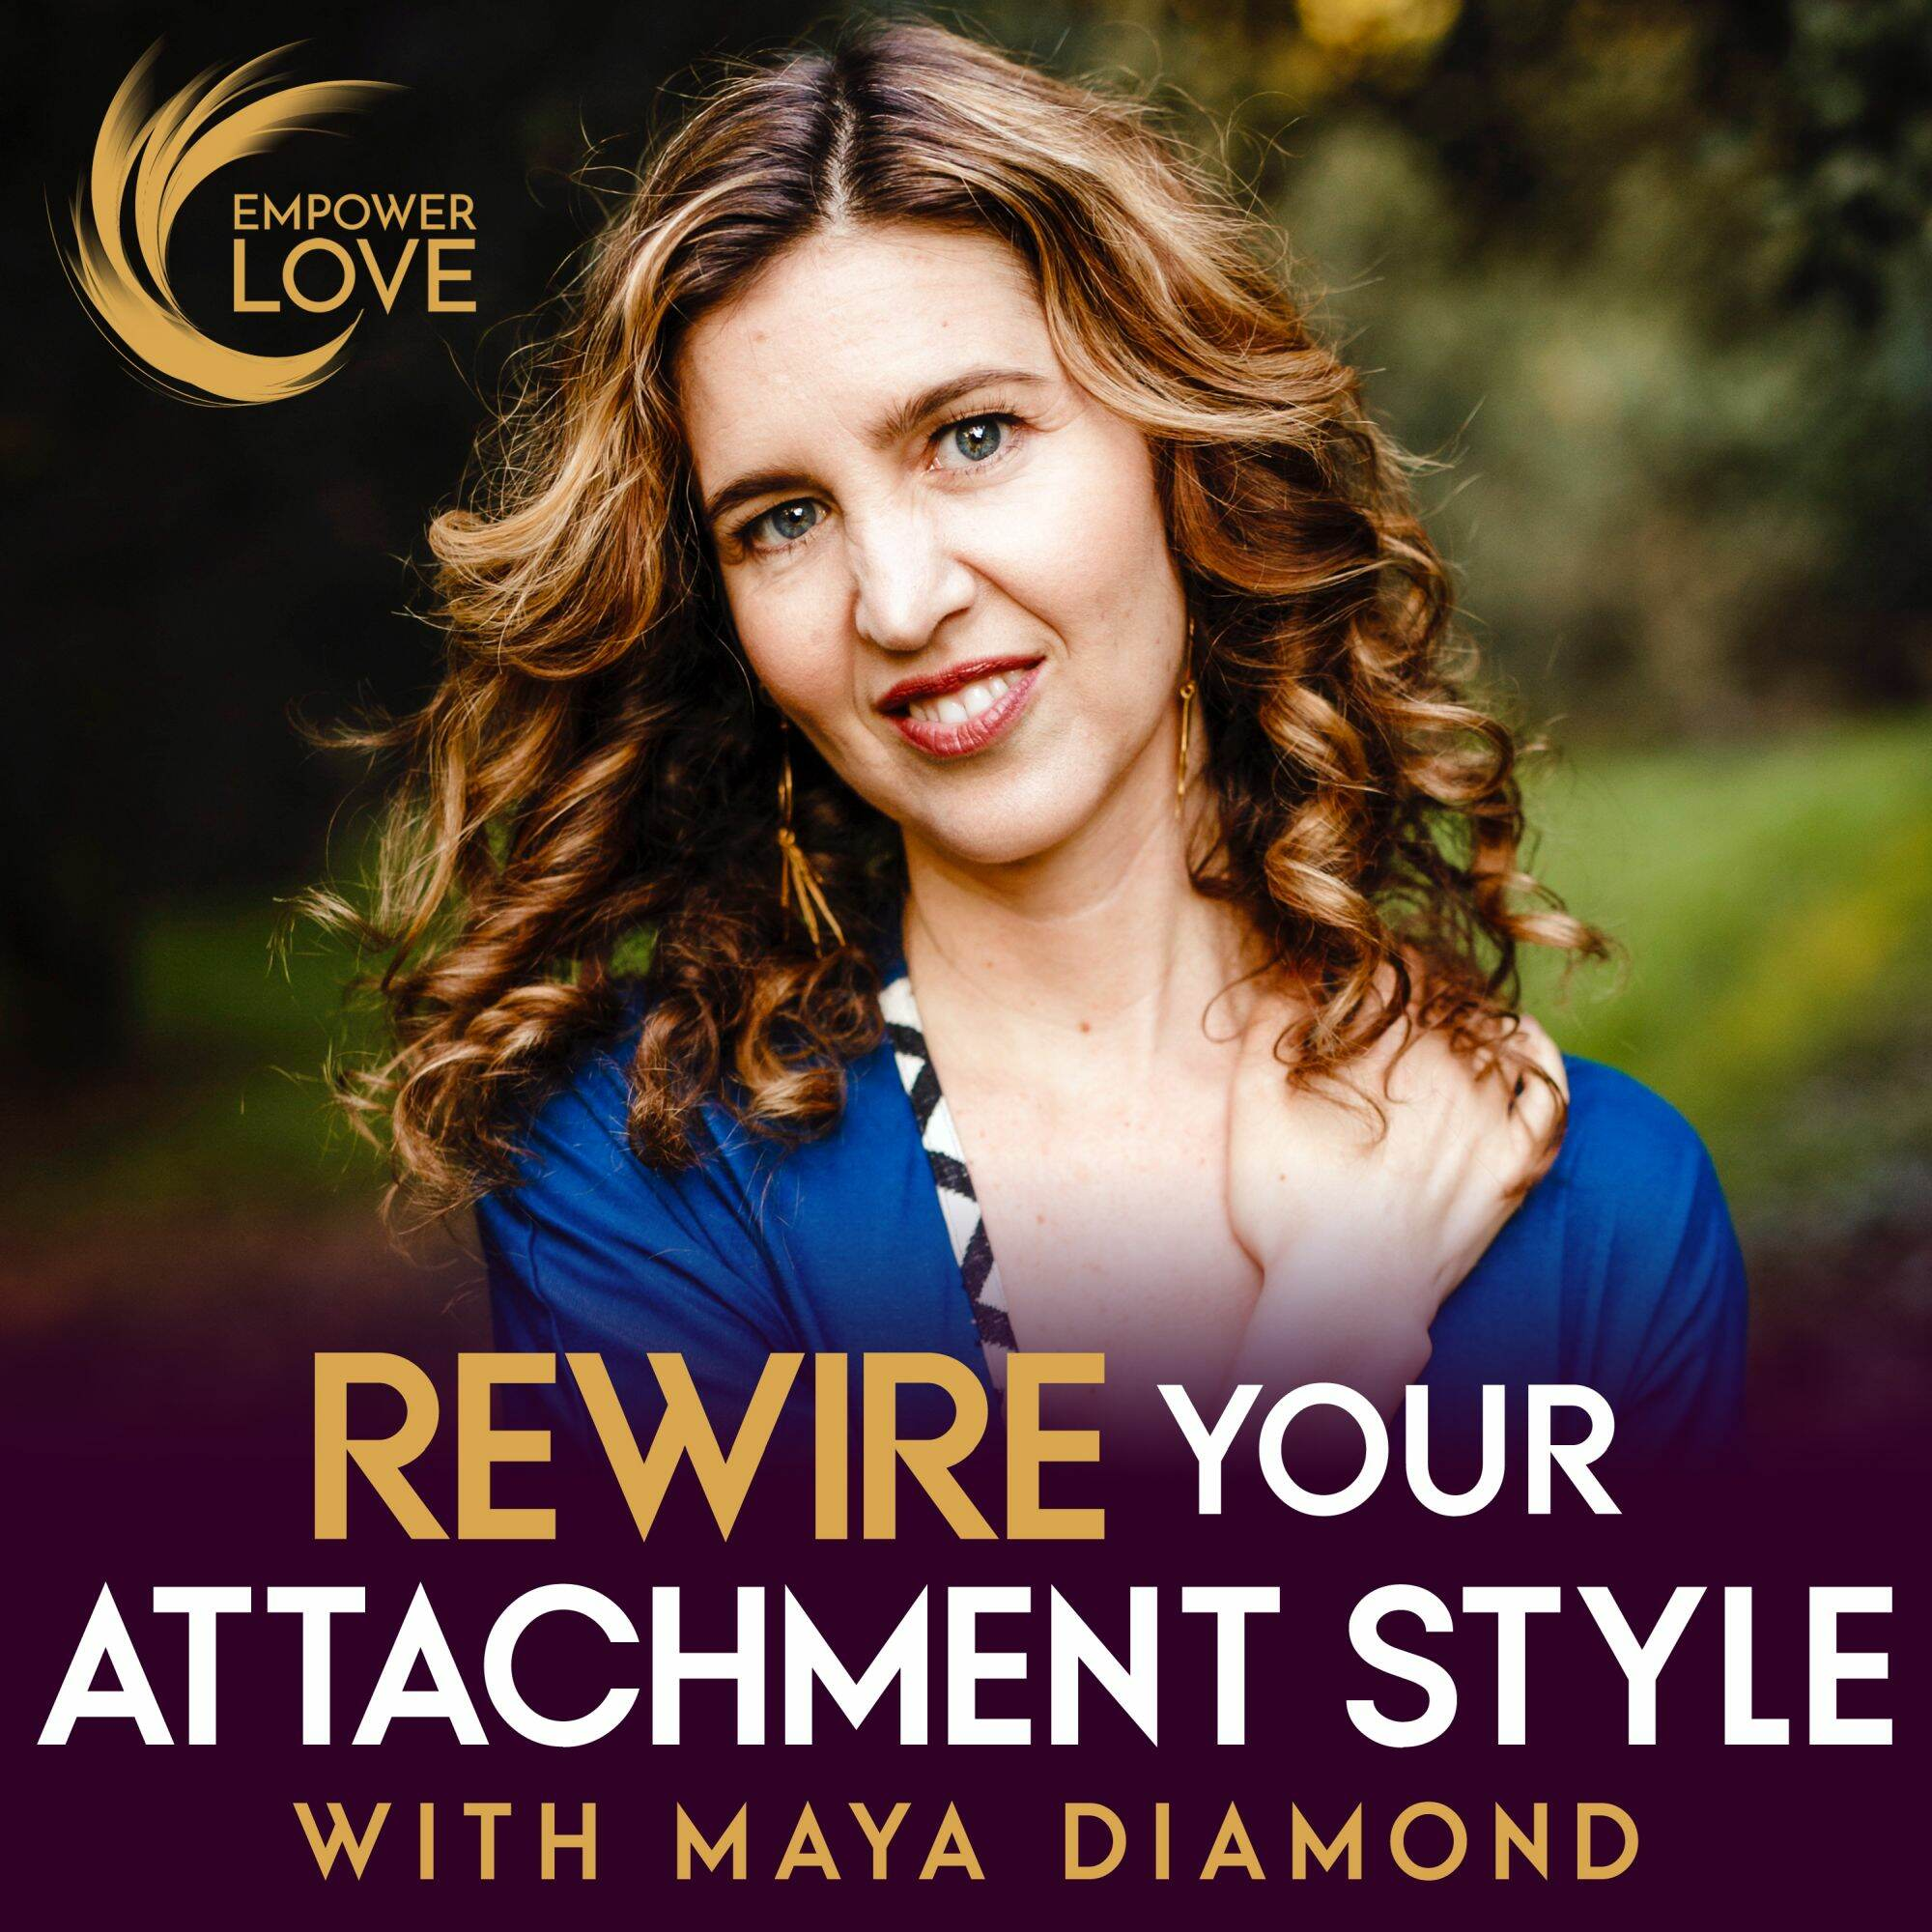 Rewire Your Attachment Style with Maya Diamond